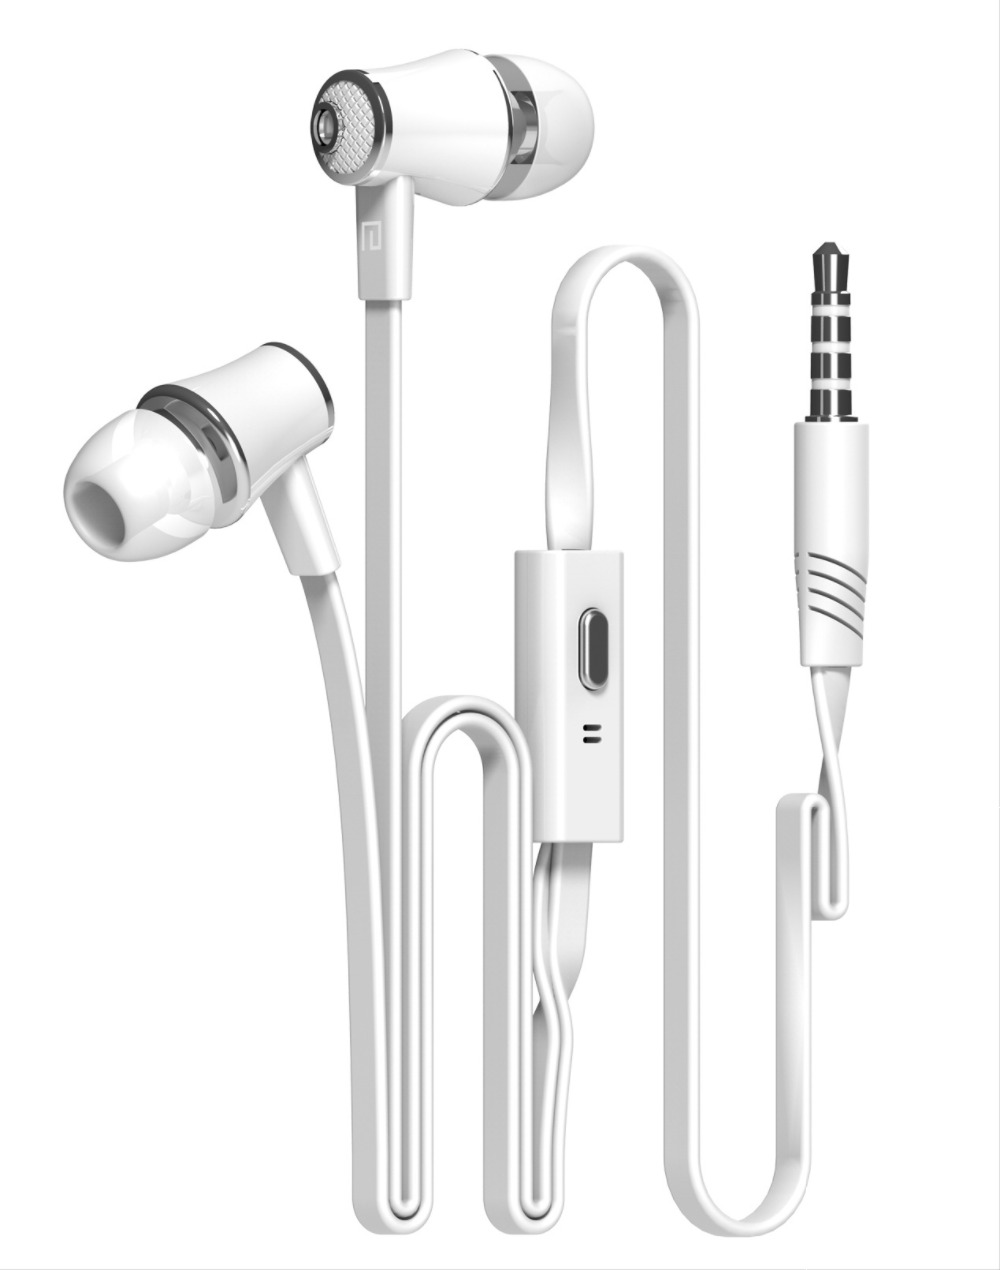 Headphone Stereo Bass Earphone Earpieces Headset with MIC 3.5MM Hands-free for Apple Samsung Sony HTC Mp3 Tablet yotaphone 2